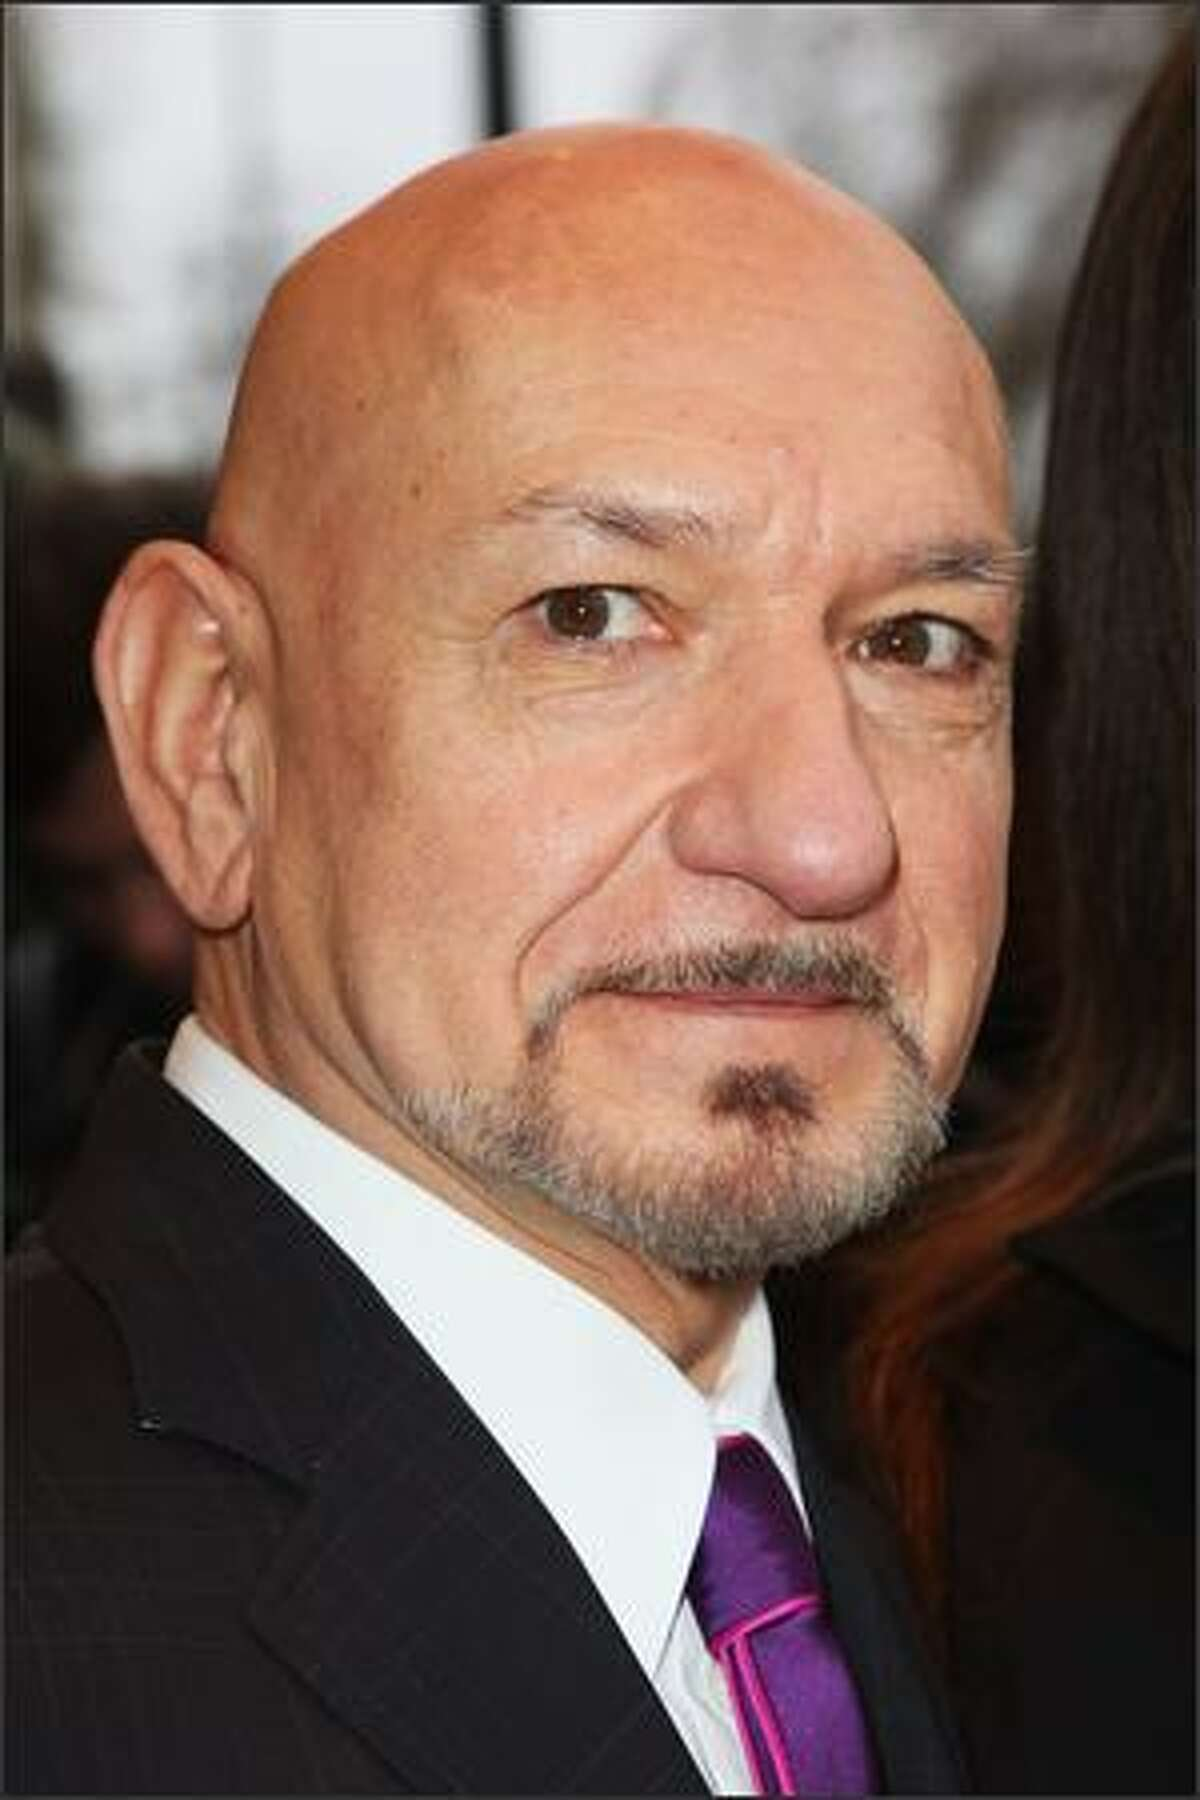 Actor Ben Kingsley arrives for the South Bank Show Awards at the Dorchester Hotel in London, England.